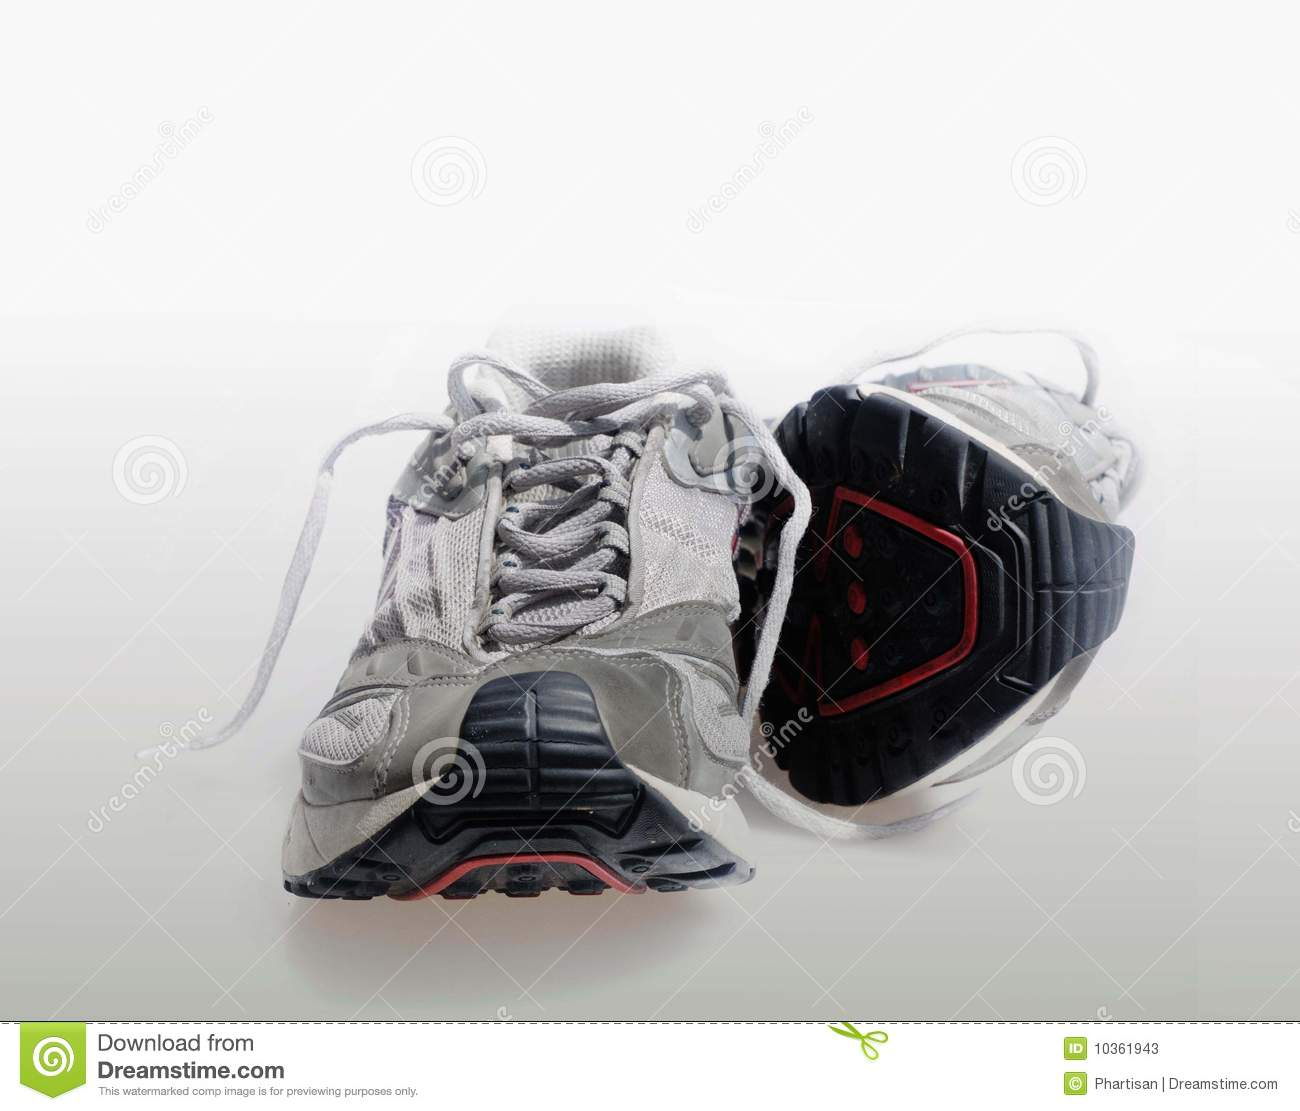 sports shoes trainers sneakrer stock photos image 10361943